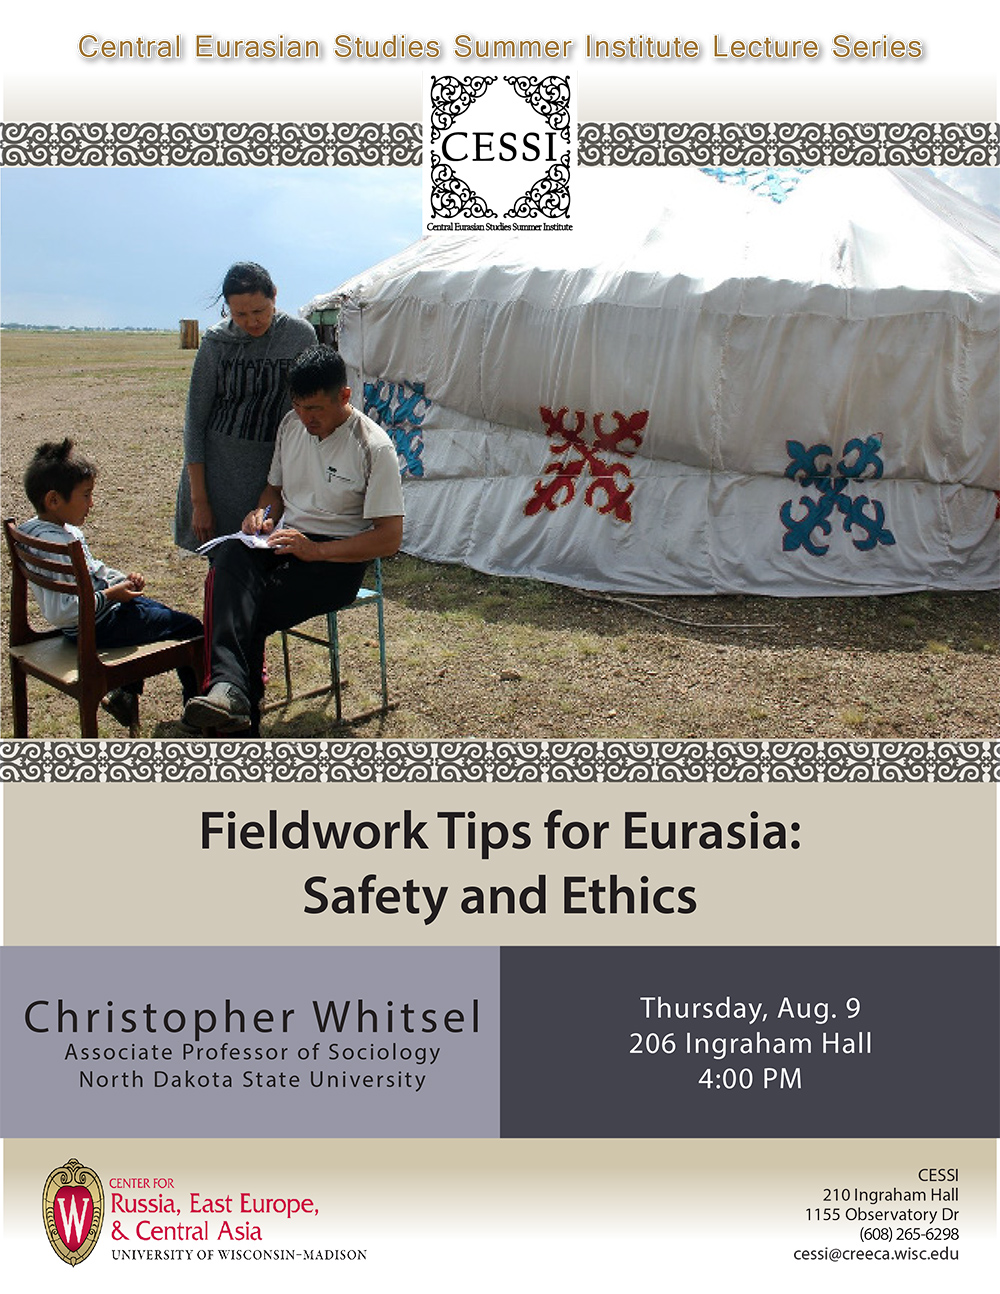 Poster For Whitsel Lecture Featuring Kazakh Family Next To Tent Filling Out  Paperwork